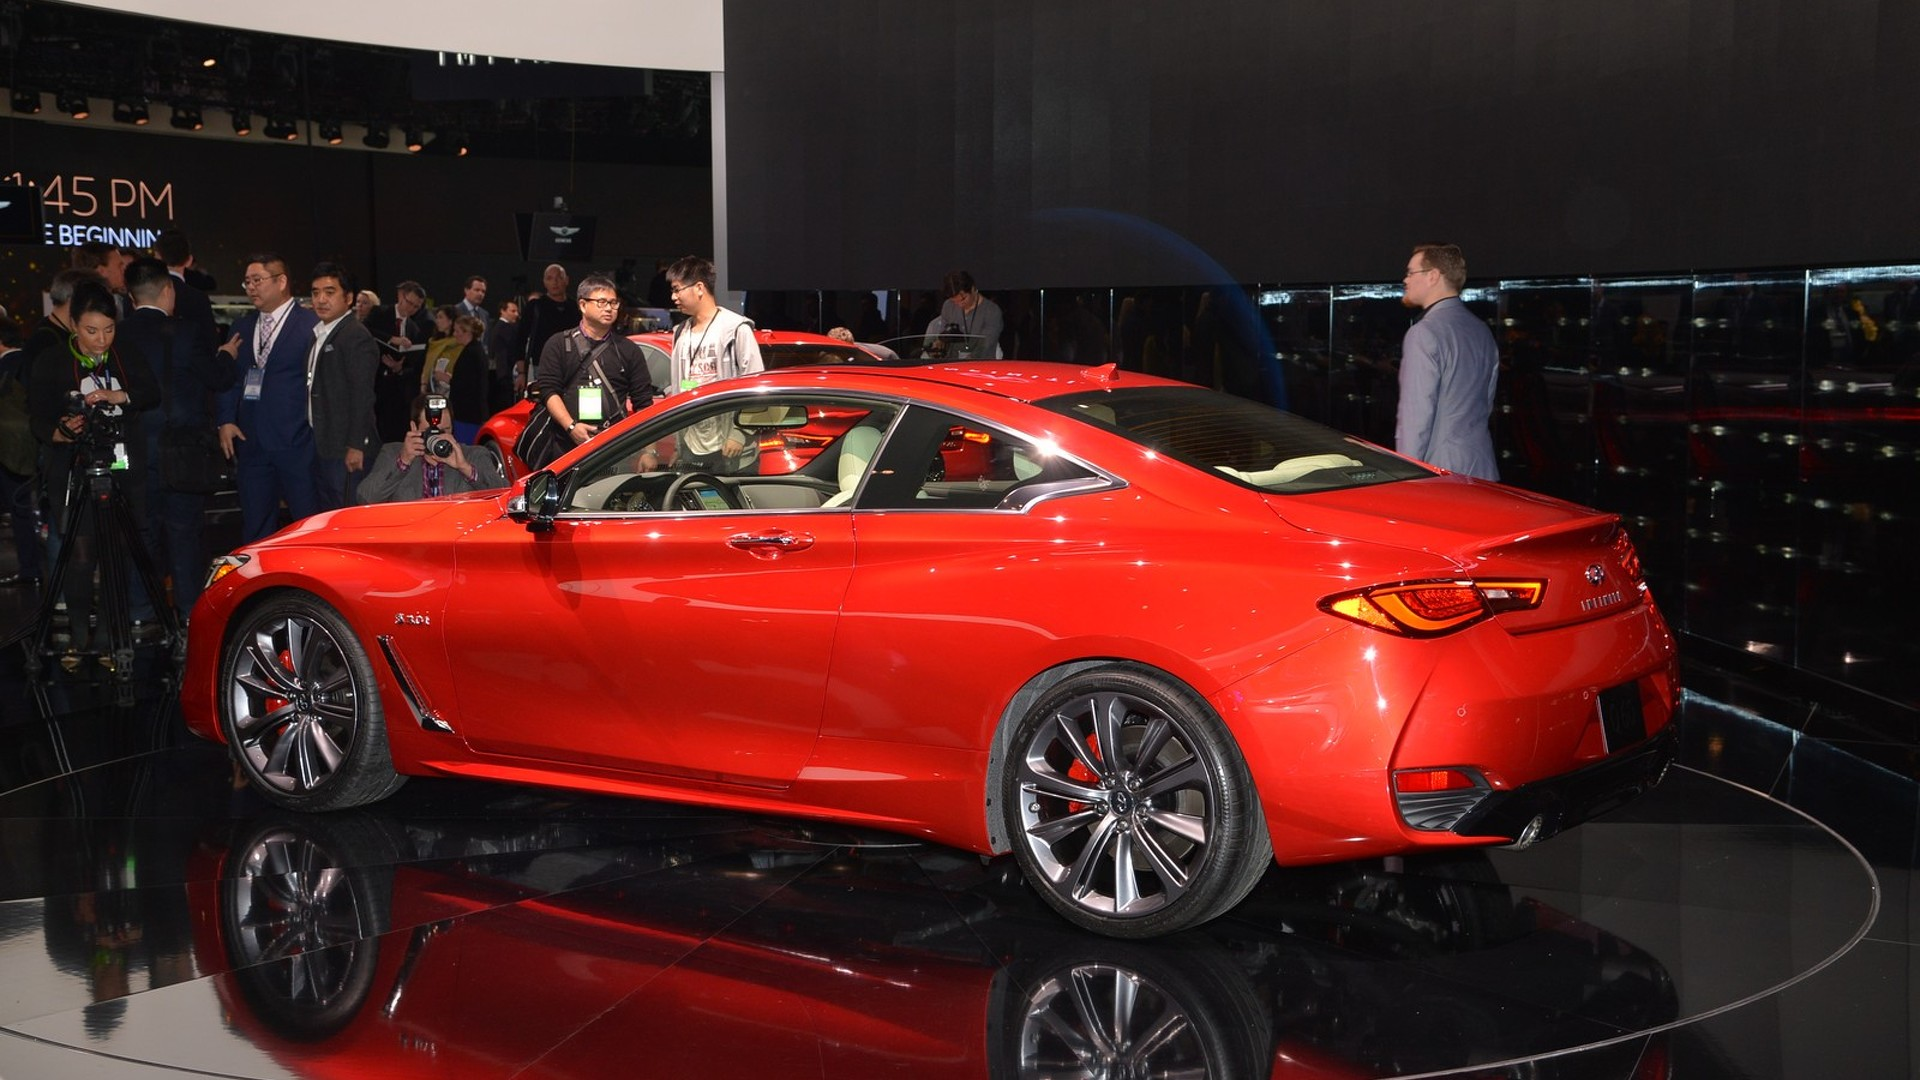 2017 Infiniti Q60 Coupe bows in Detroit with 400 hp biturbo V6 [LIVE